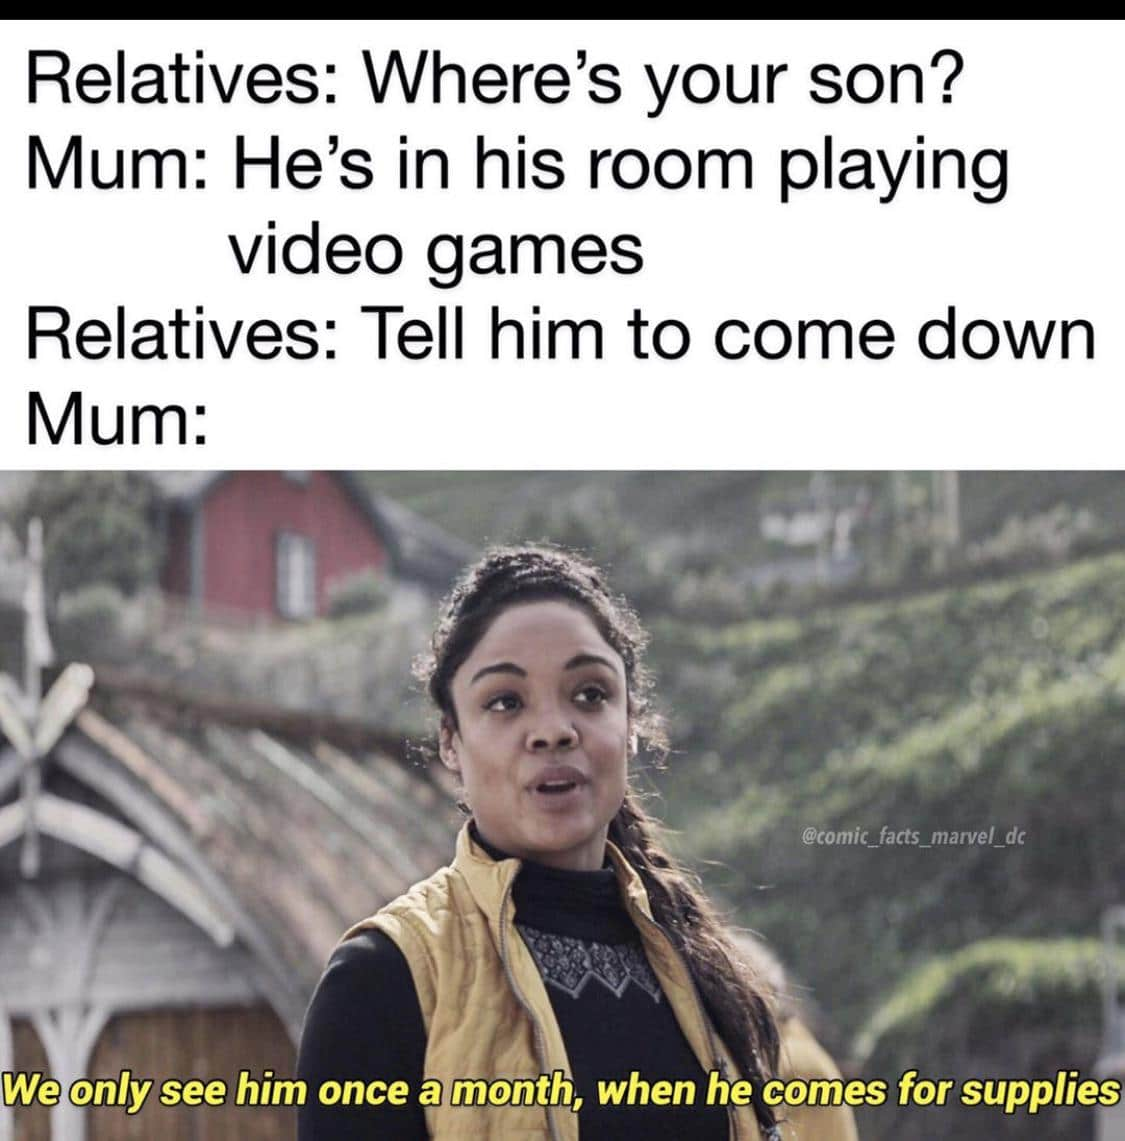 Dank, Visit, Negative, Feedback, False Negative, False other memes Dank, Visit, Negative, Feedback, False Negative, False text: Relatives: Where's your son? Mum: He's in his room playing video games Relatives: Tell him to come down Mum: @comic facts marvel dc We only see him once a mönth, when he qomes for supplies